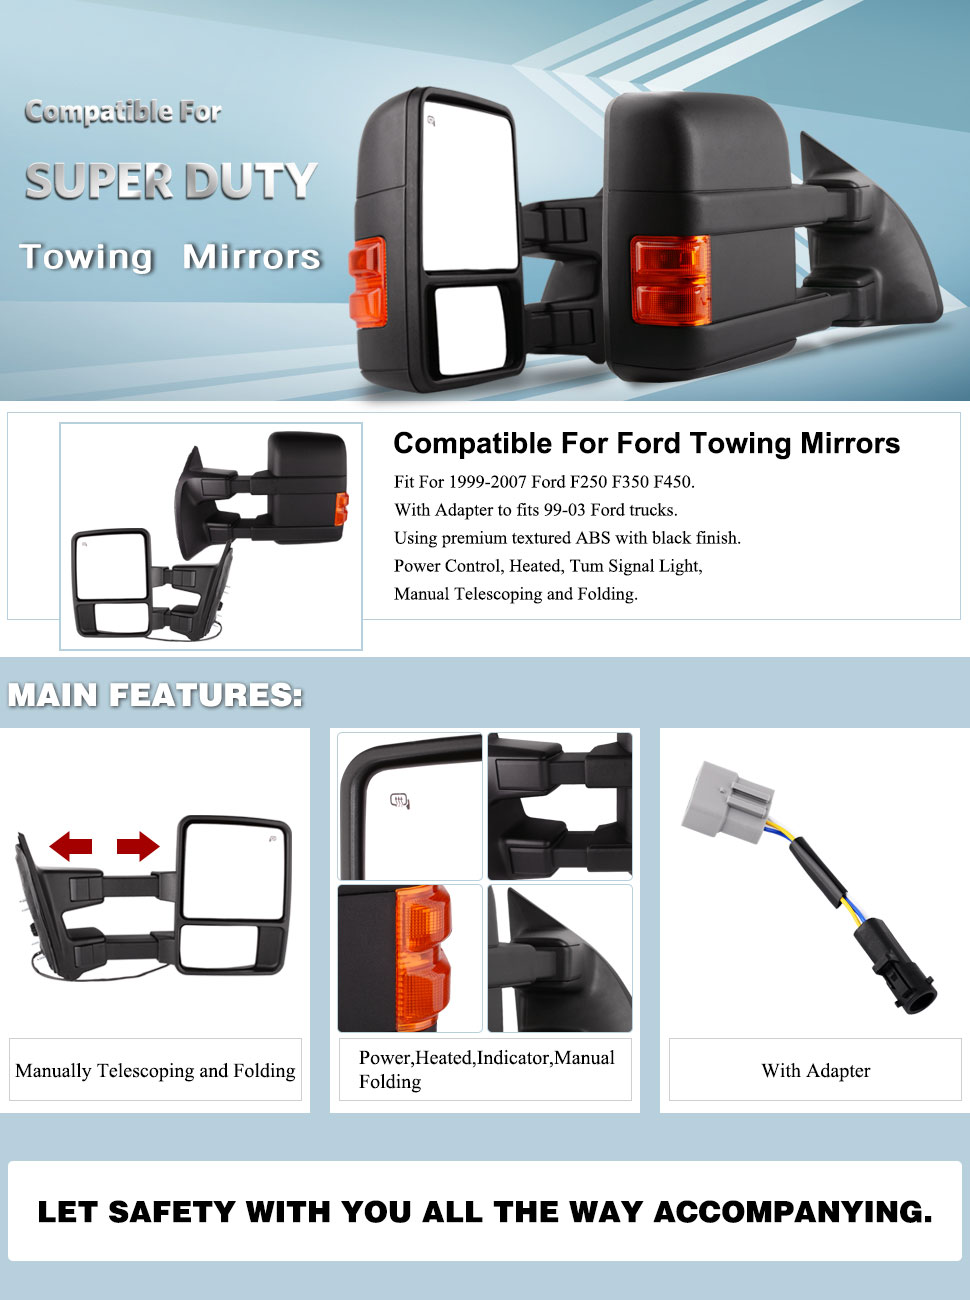 compatible for ford towing mirrors ford f250 f350 f450 f550 tow mirrors  pair for 1999-2007 side mirror power heated with signal light